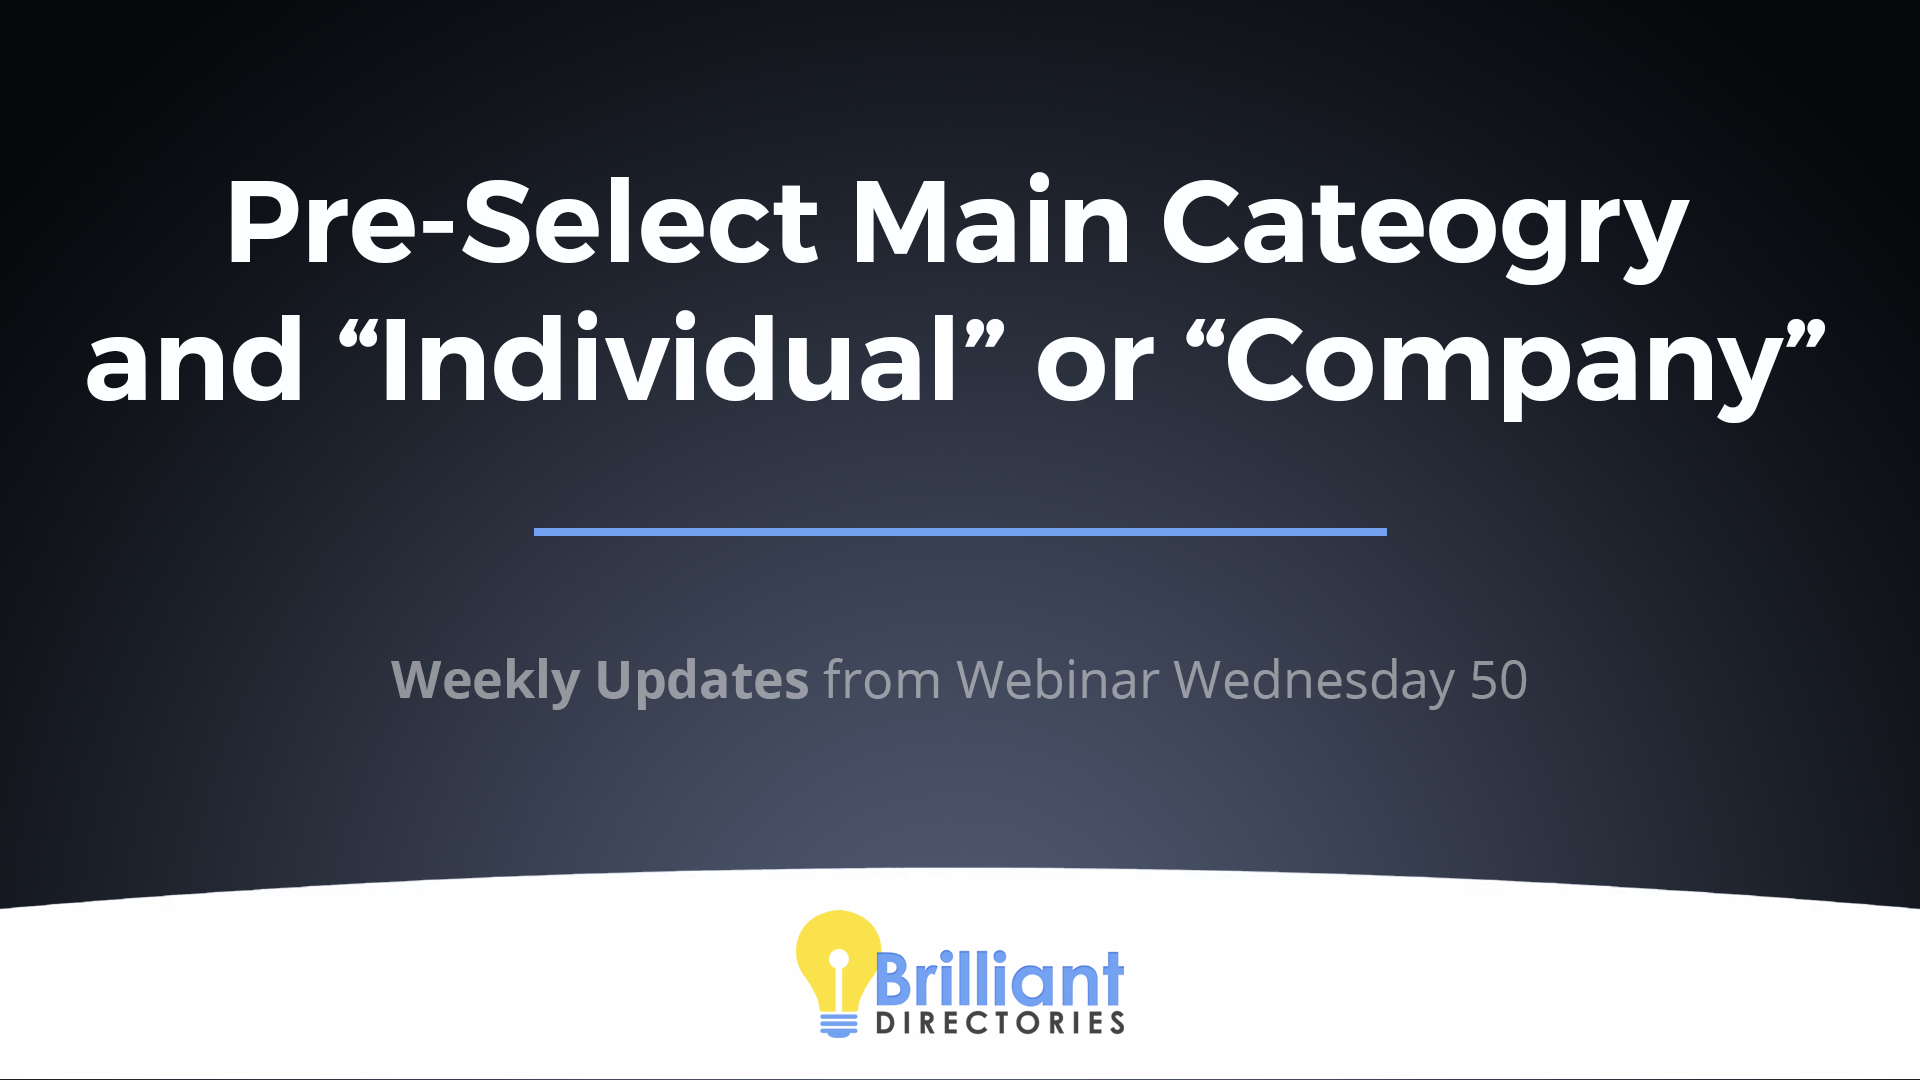 https://www.brilliantdirectories.com/blog/how-to-pre-select-categories-individual-vs-company-profile-when-members-sign-up